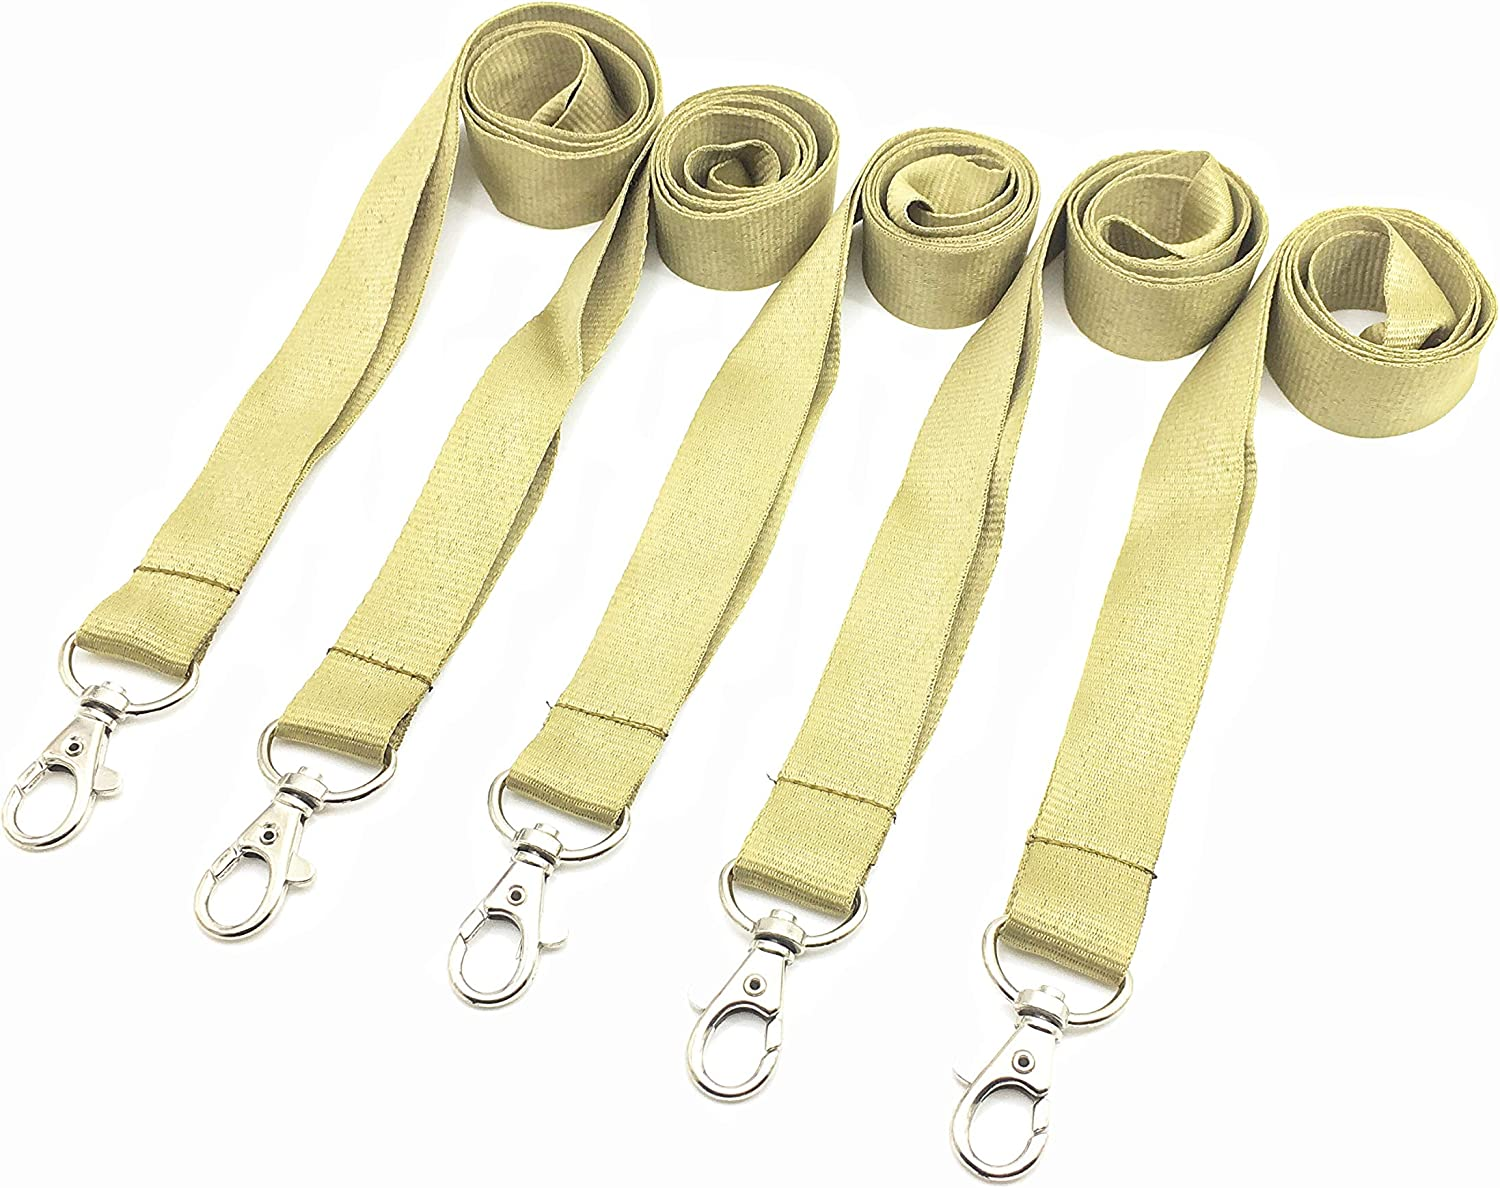 Neck Gold Max 2021 new 51% OFF Lanyards for ID Badge Str Flat Lanyard Holder Durable